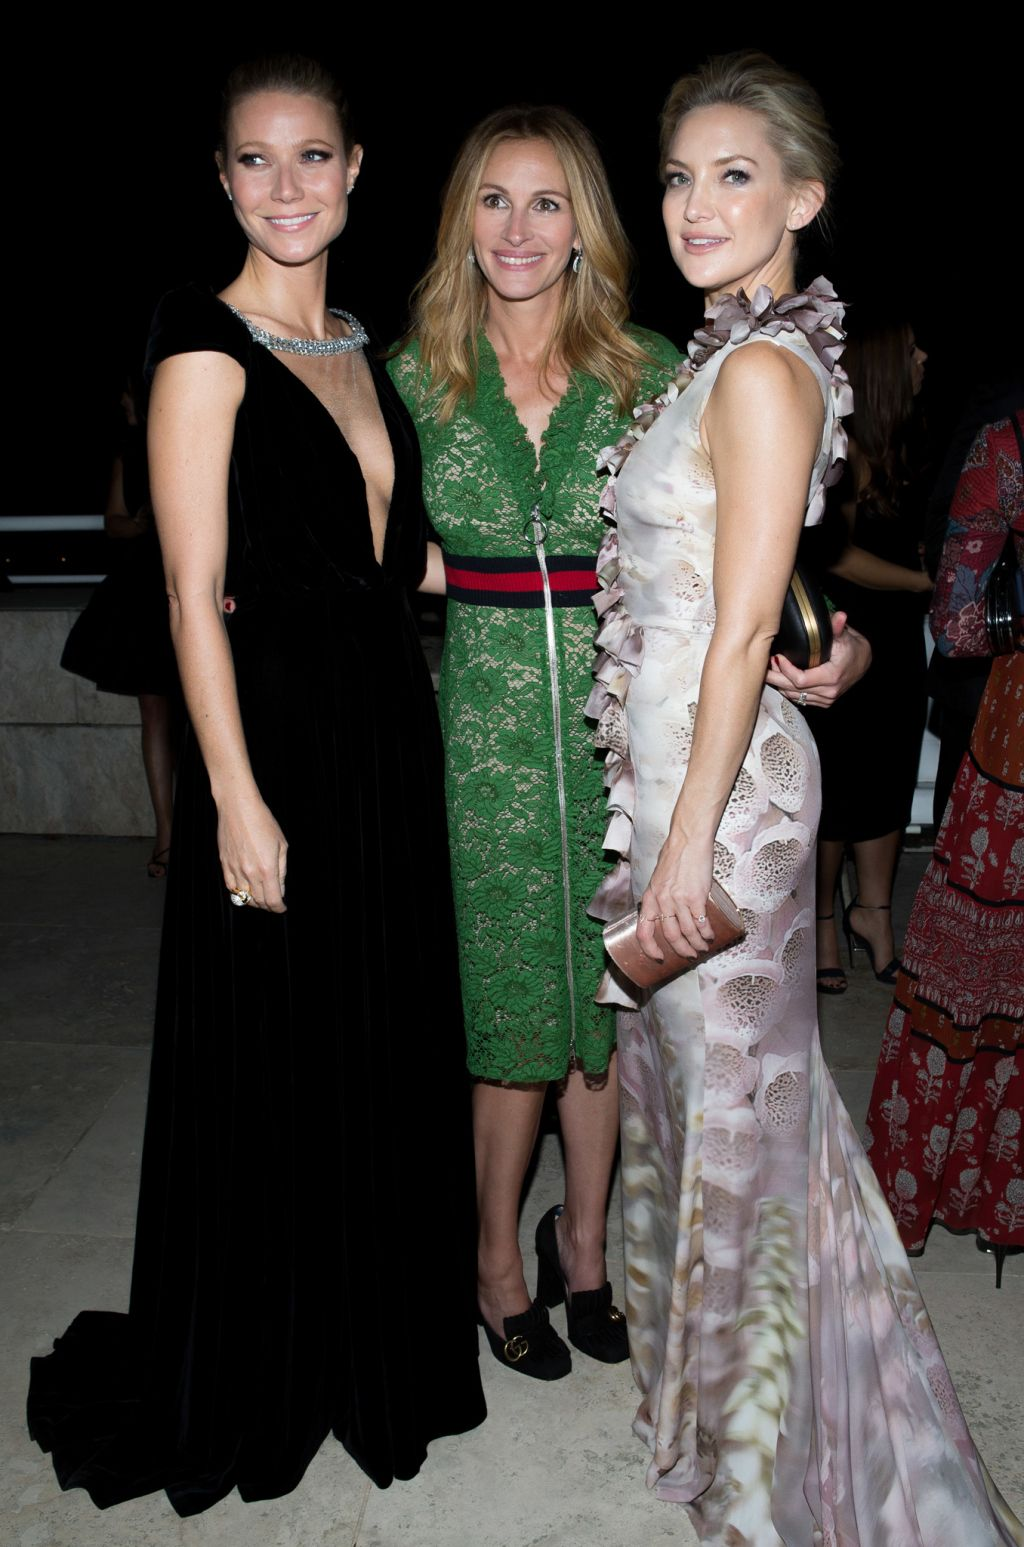 Best Party Photos of the Week October 2630, 2015